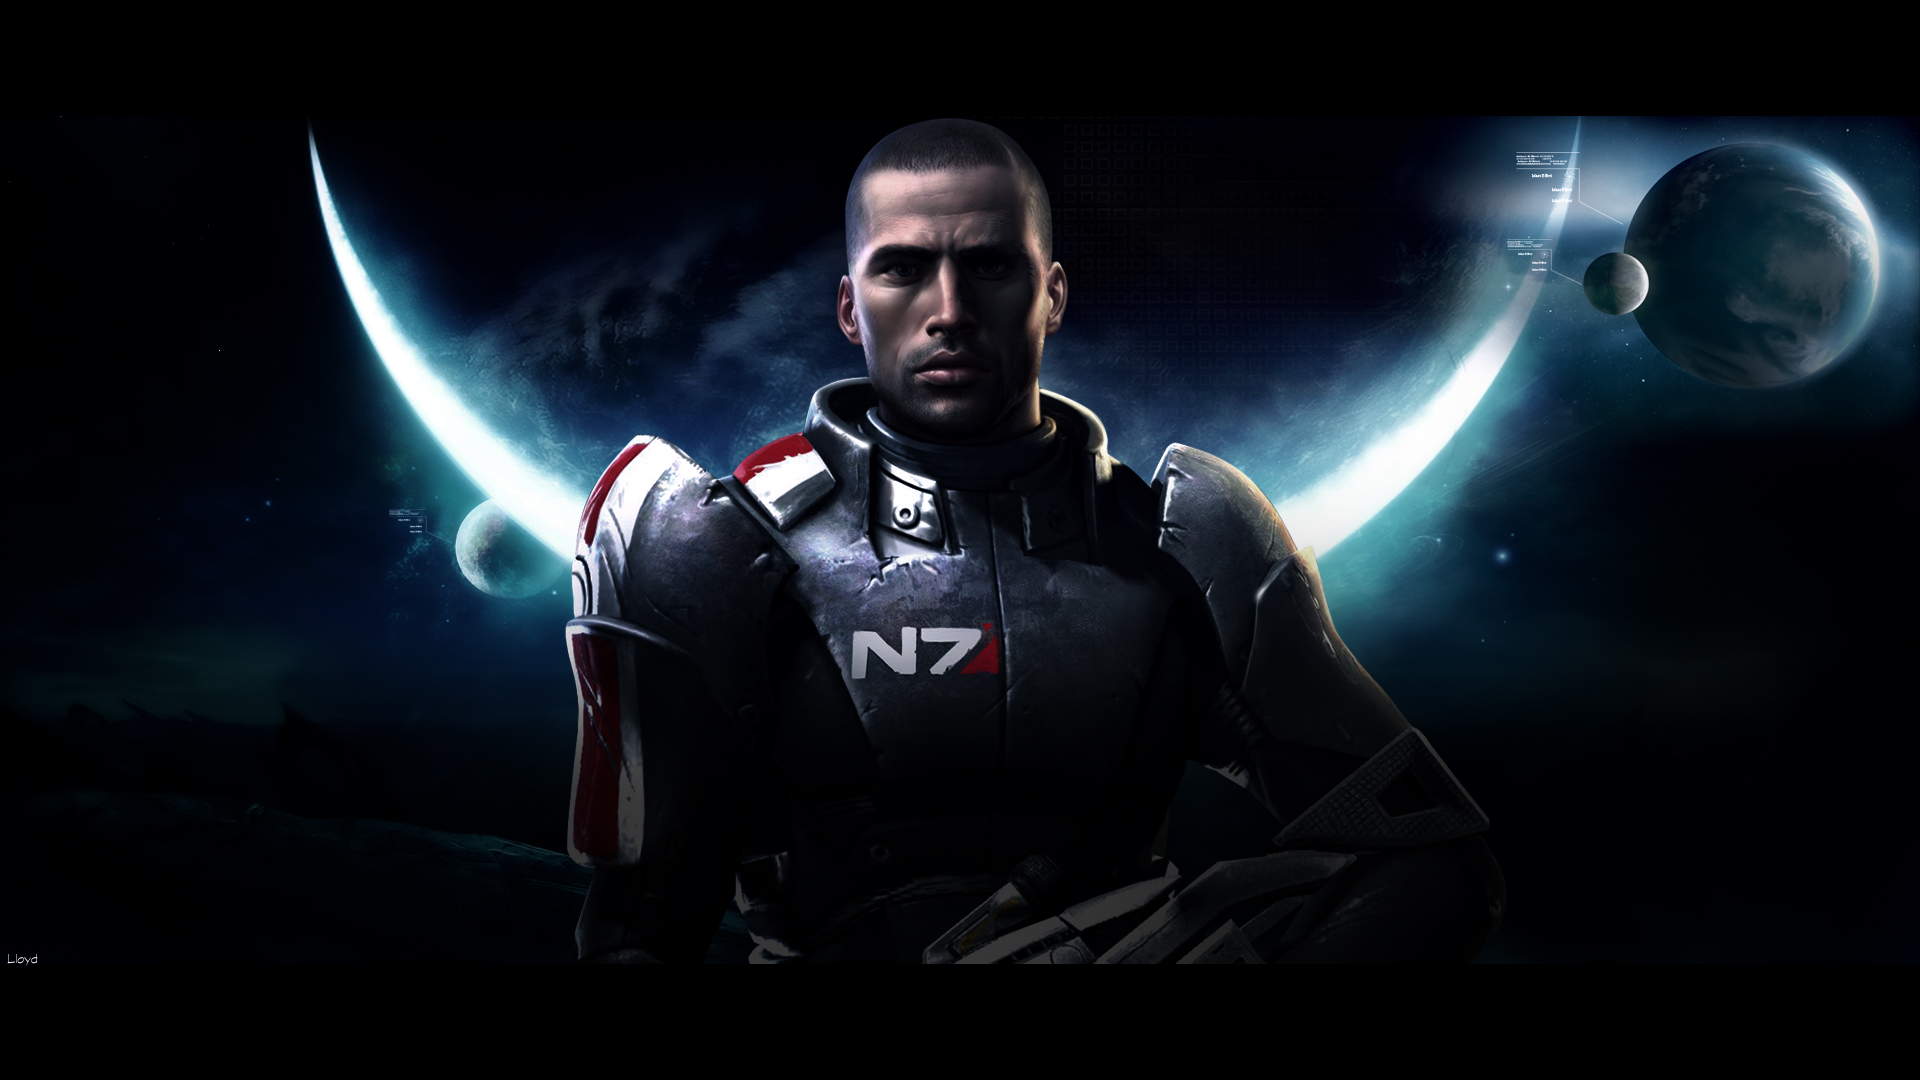 Mass Effect 2 Wallpaper 2